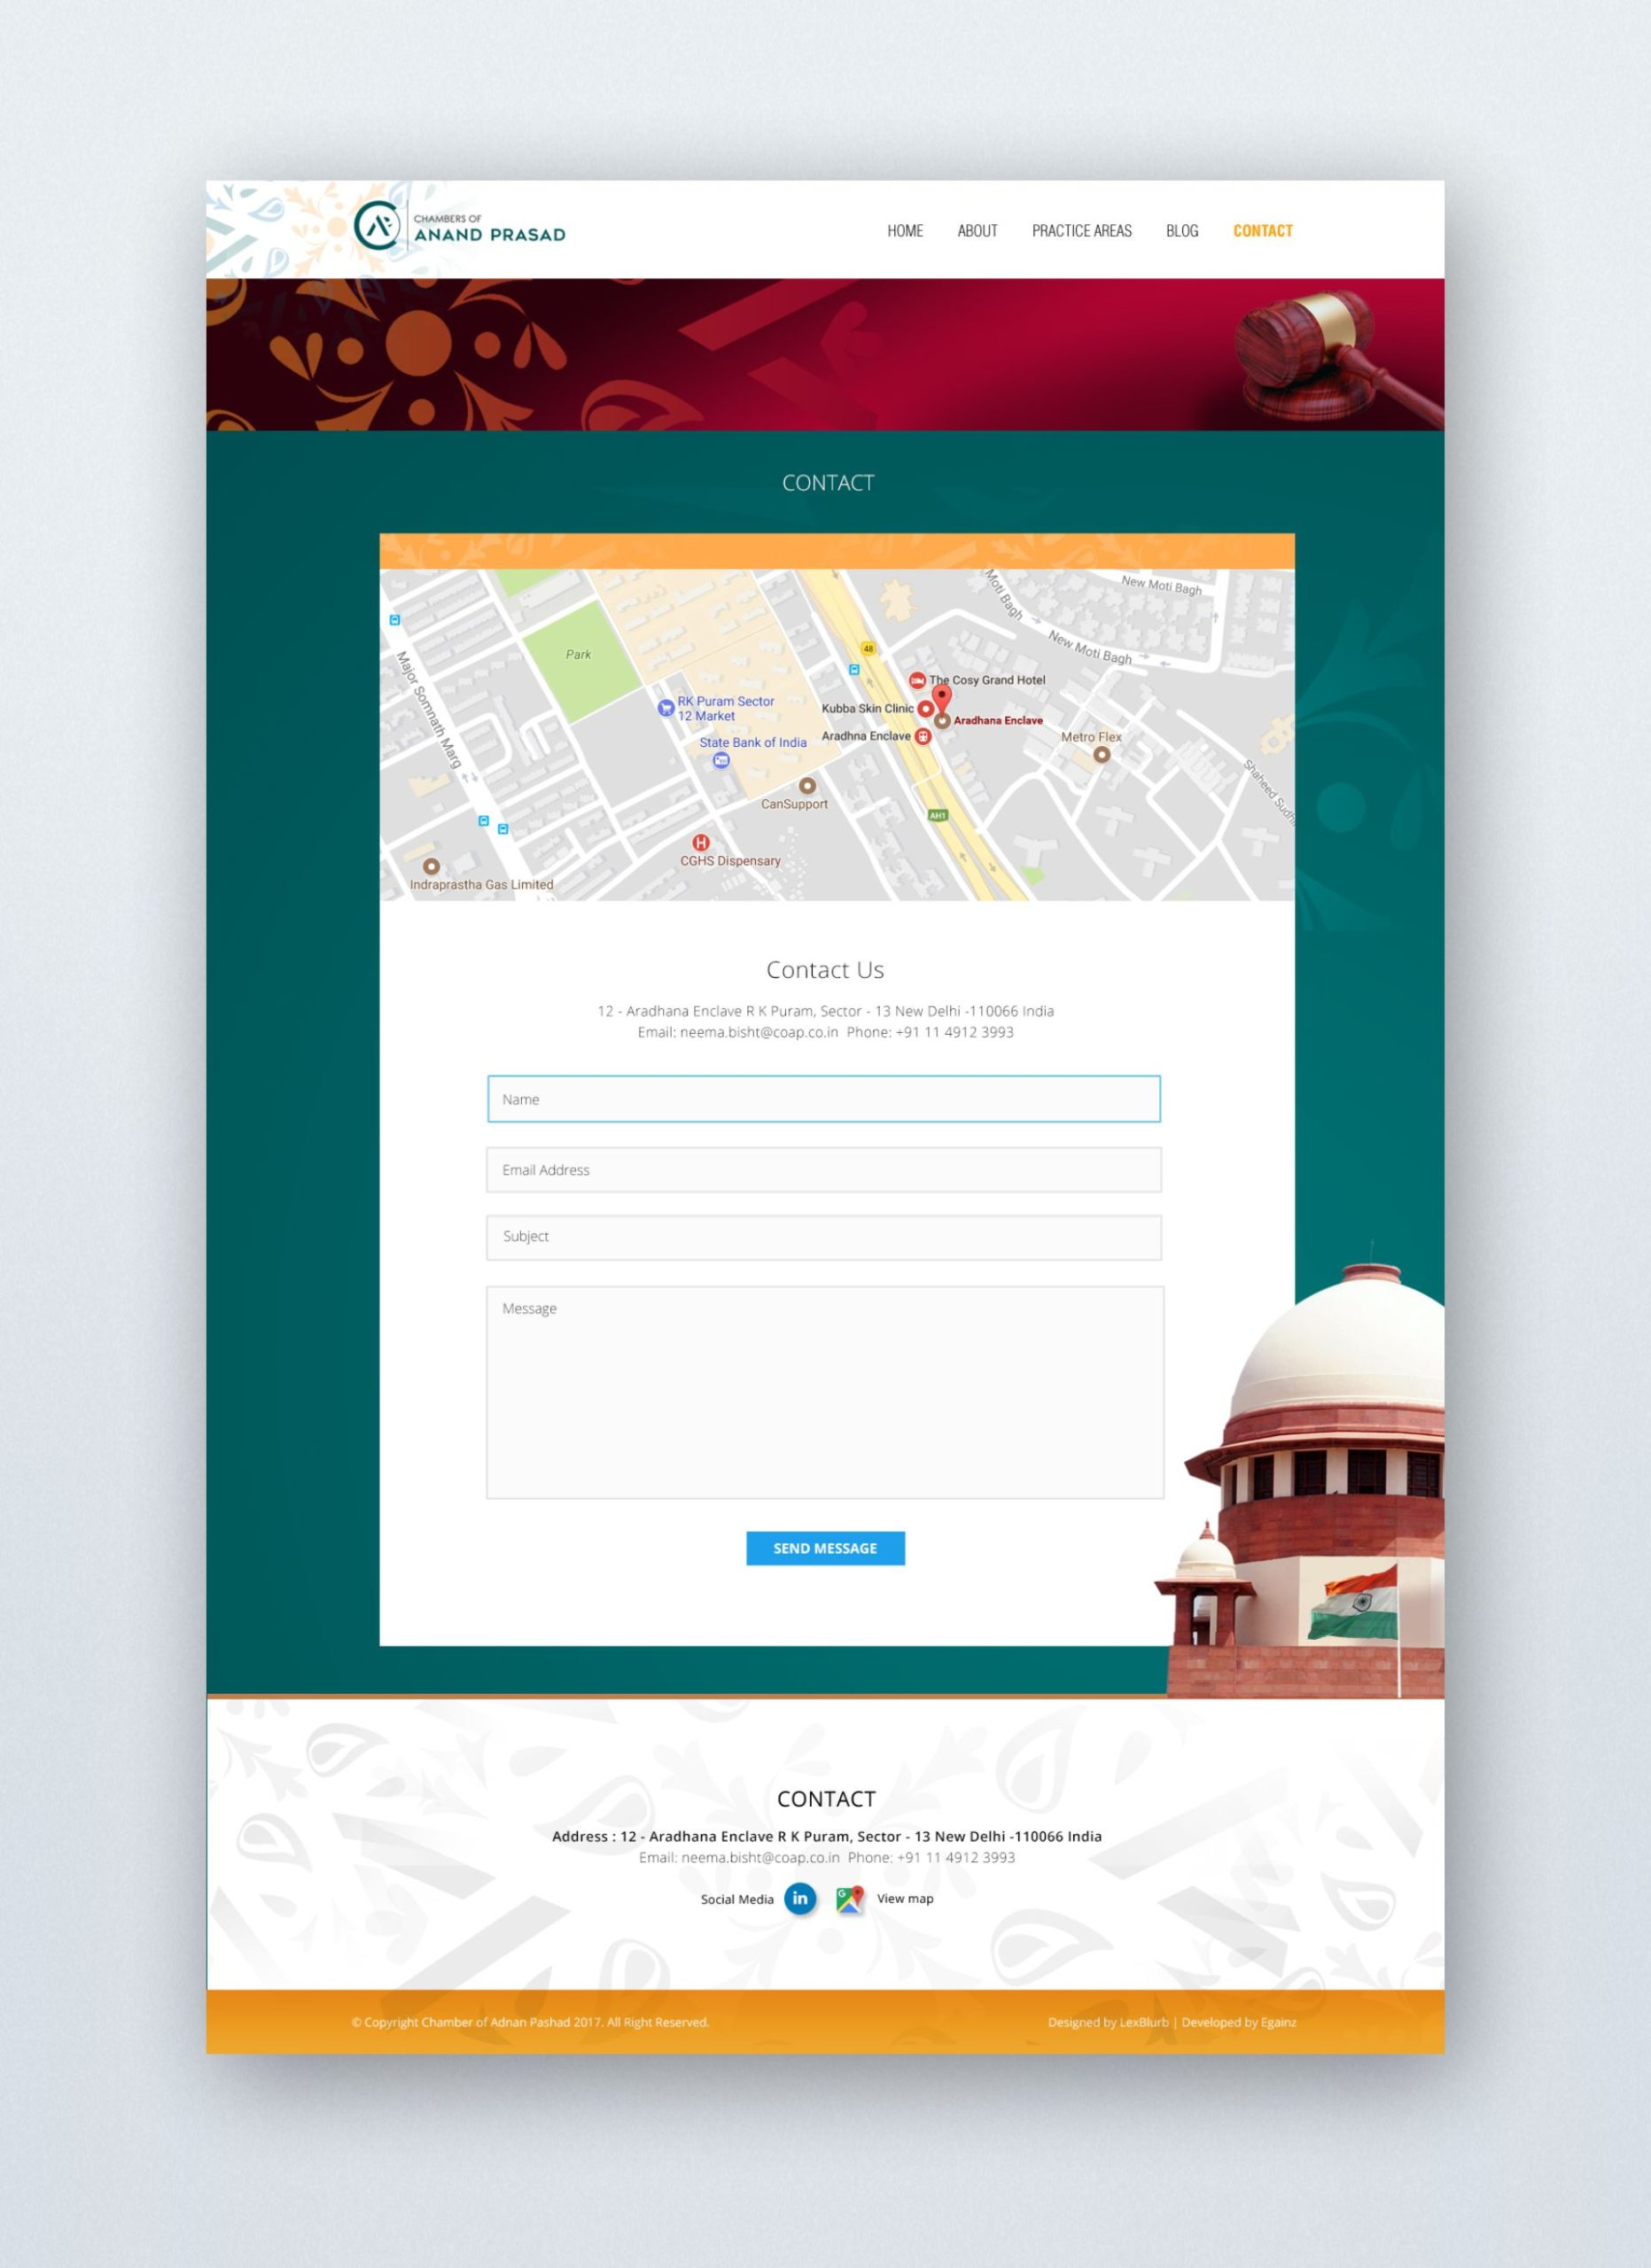 Chambers of Anand Prasad - Website Design - Contact